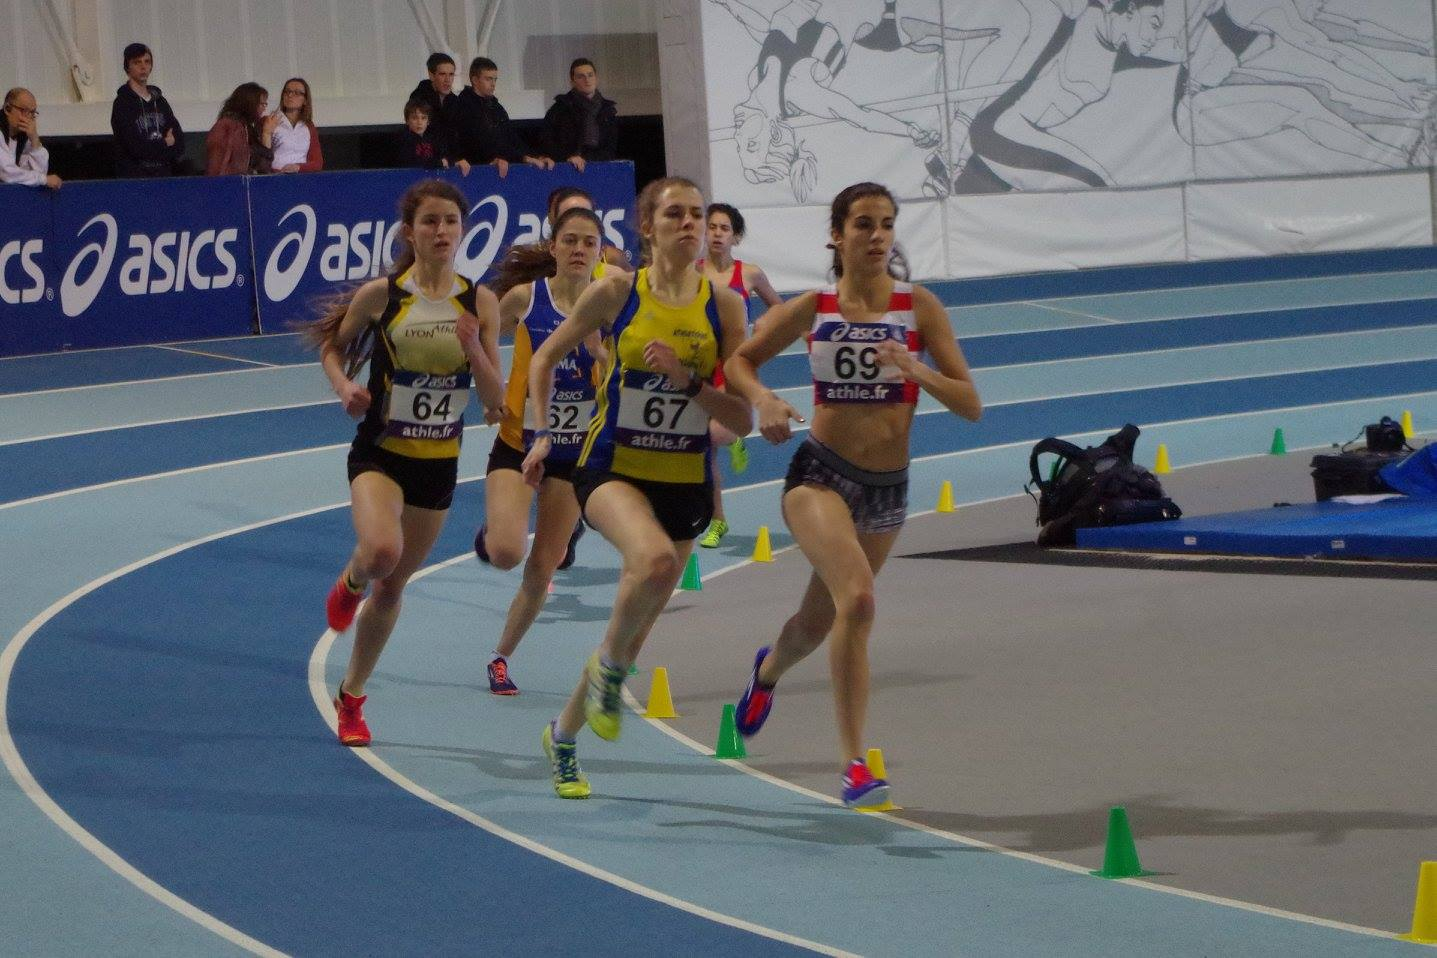 Agathe_France_juniors_indoor_2016.jpg